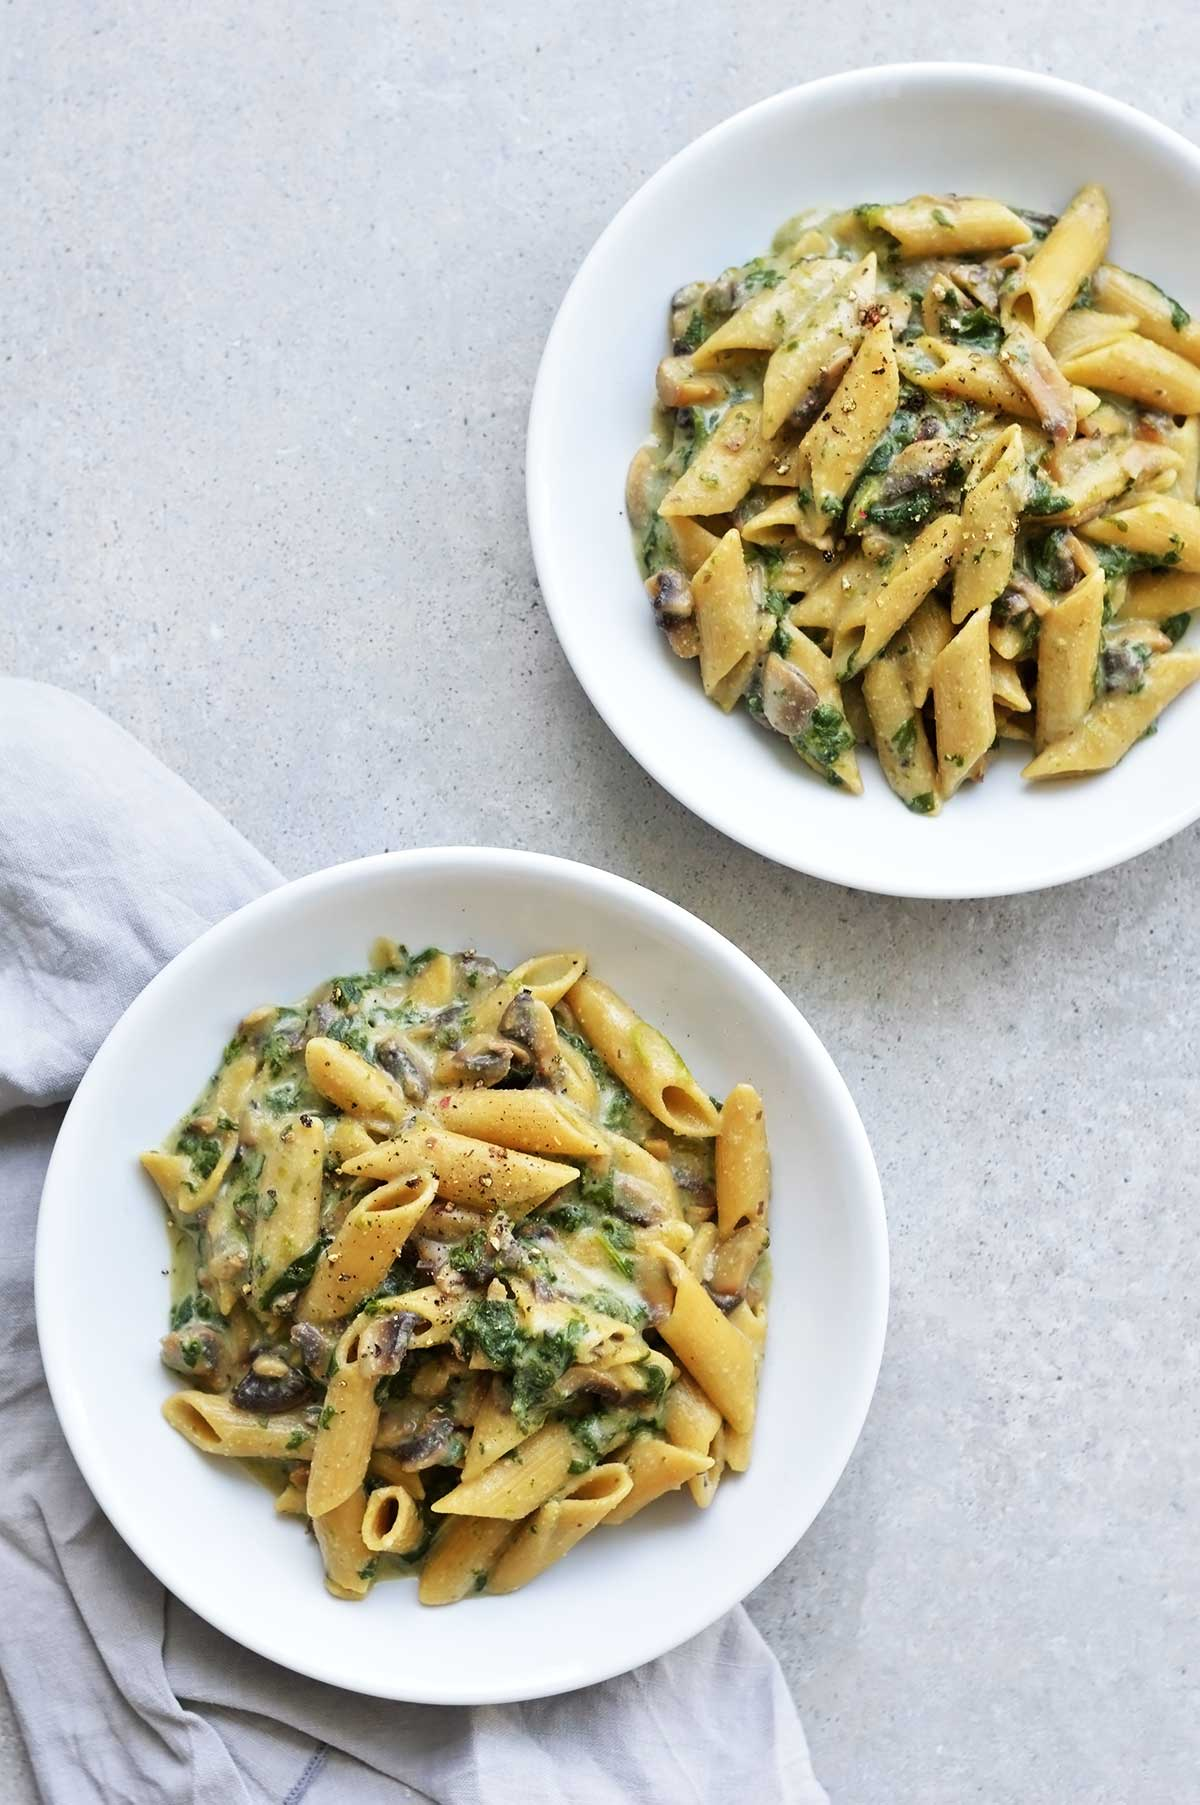 two plates of creamy pasta